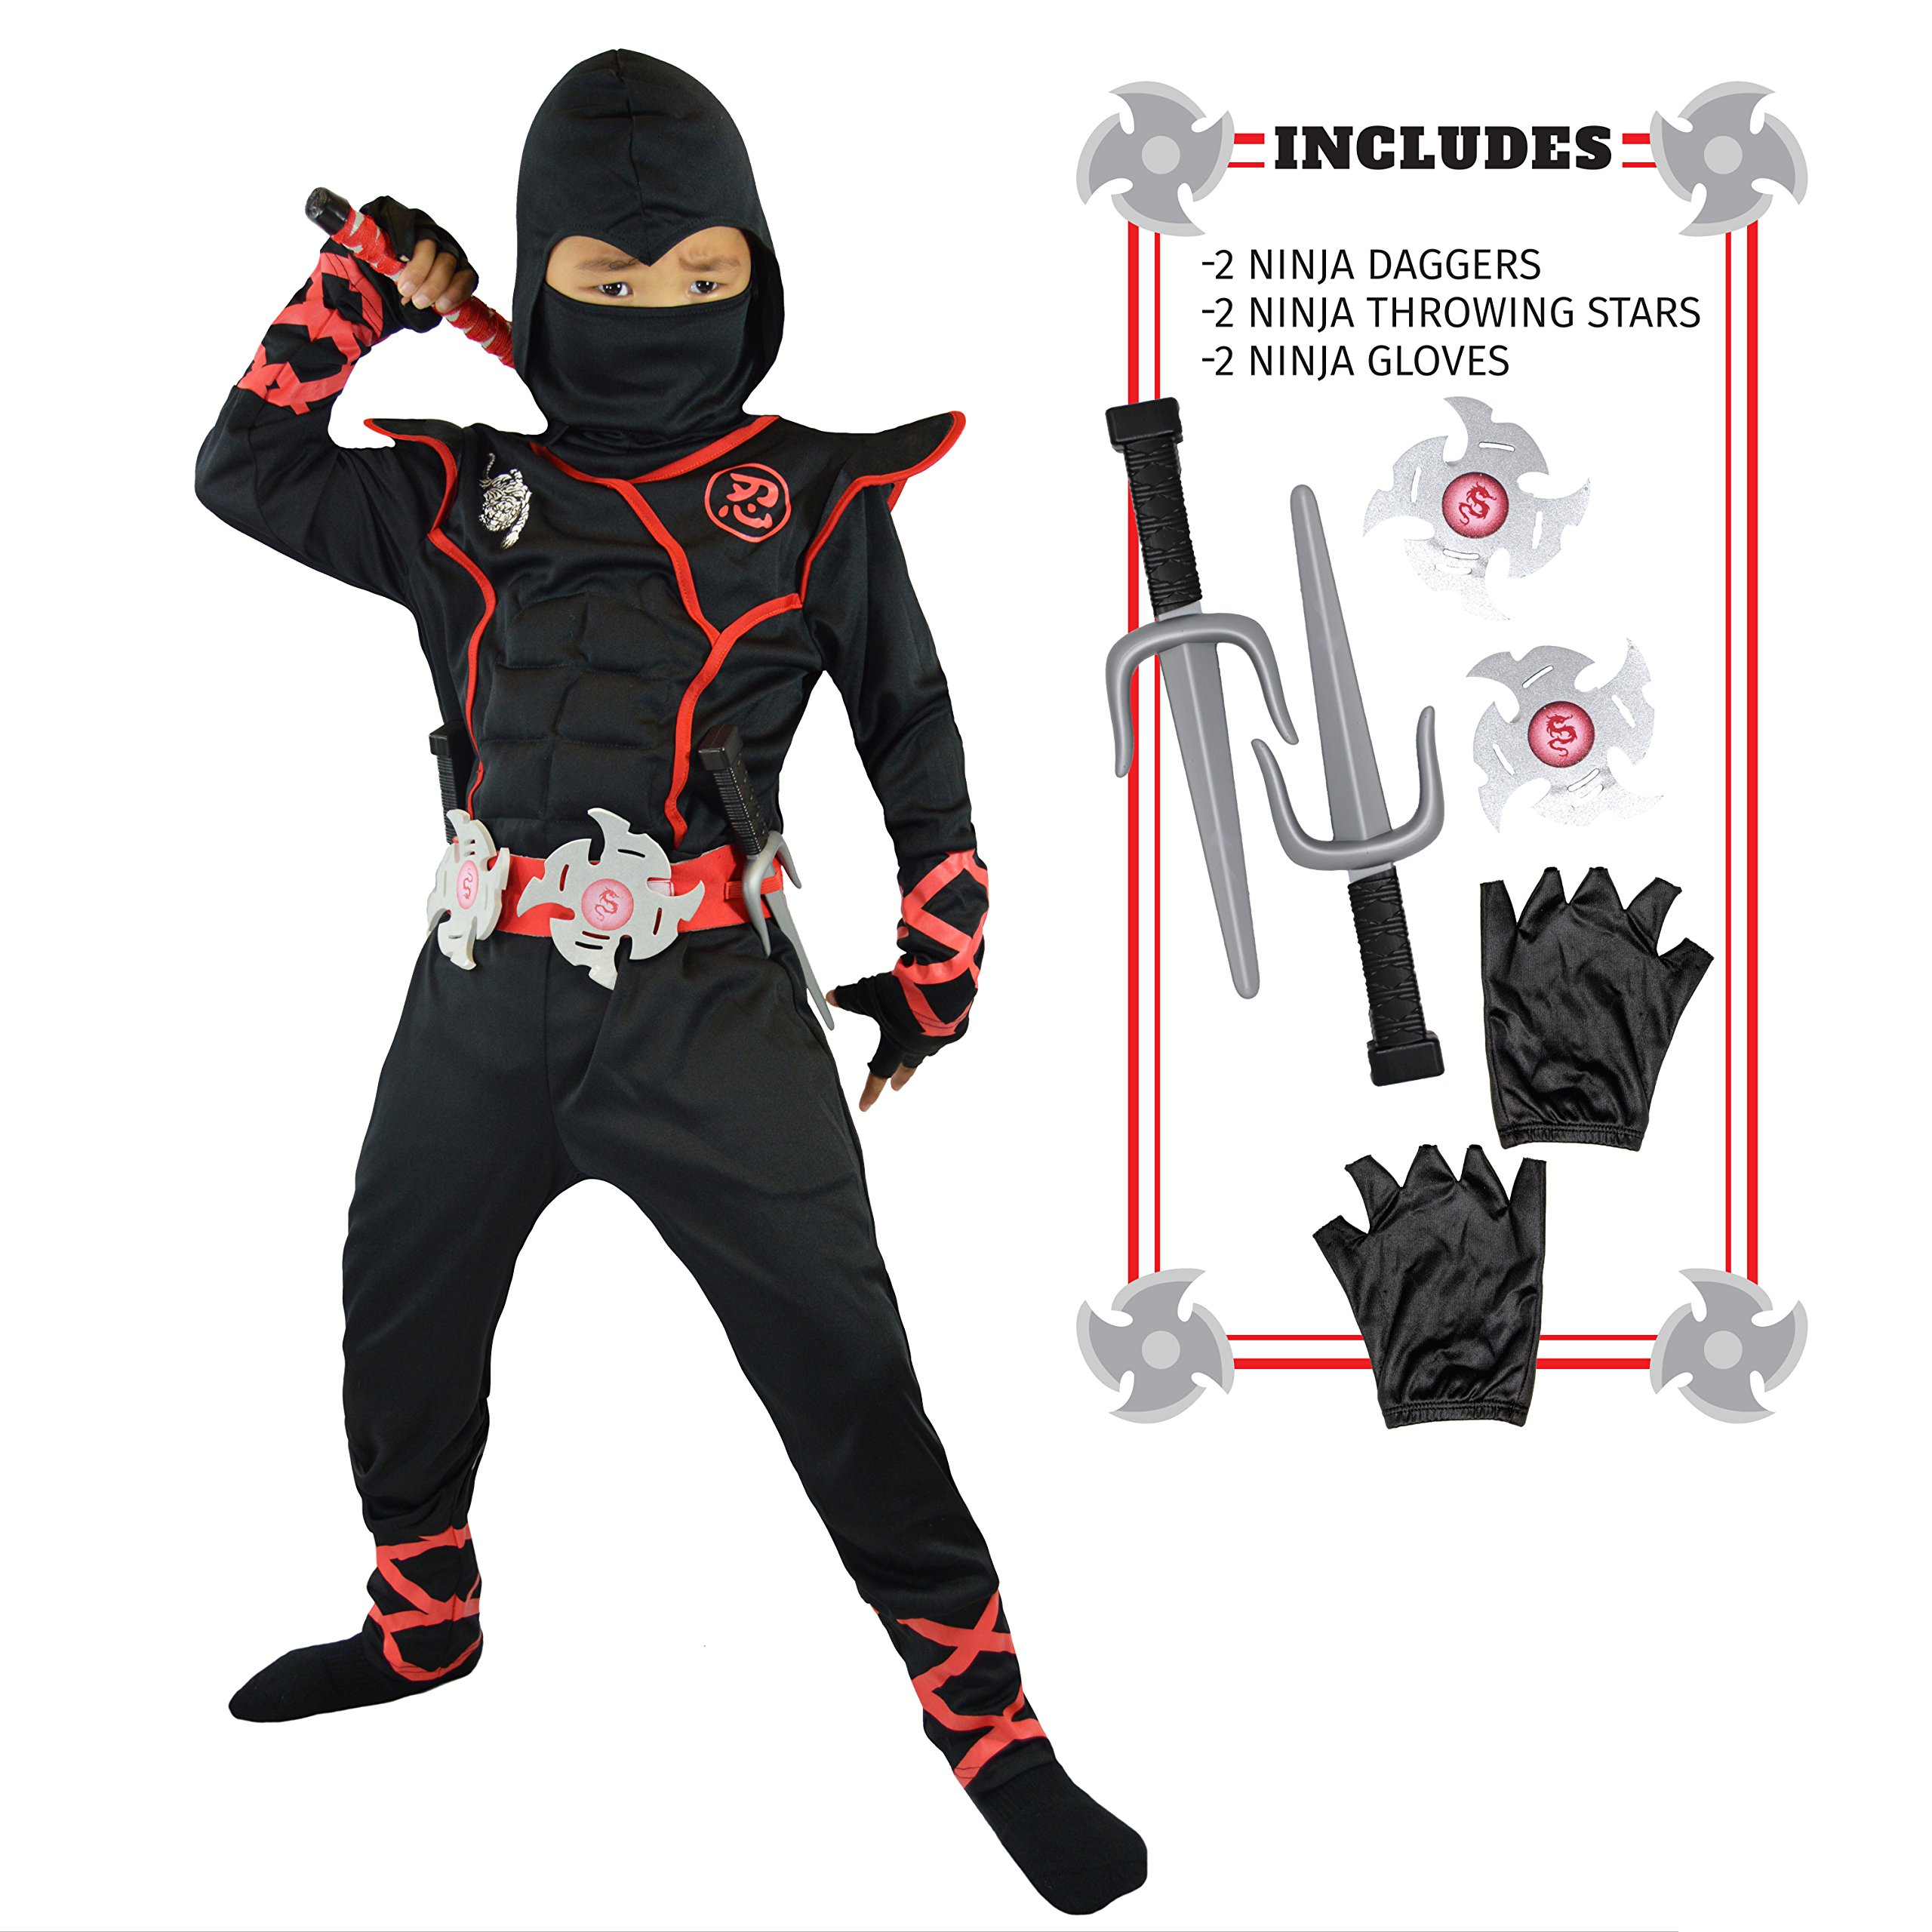 Spooktacular Creations Boys Ninja Deluxe Costume for Kids with Ninja Daggers and Throwing Stars (M 8-10) by Spooktacular Creations